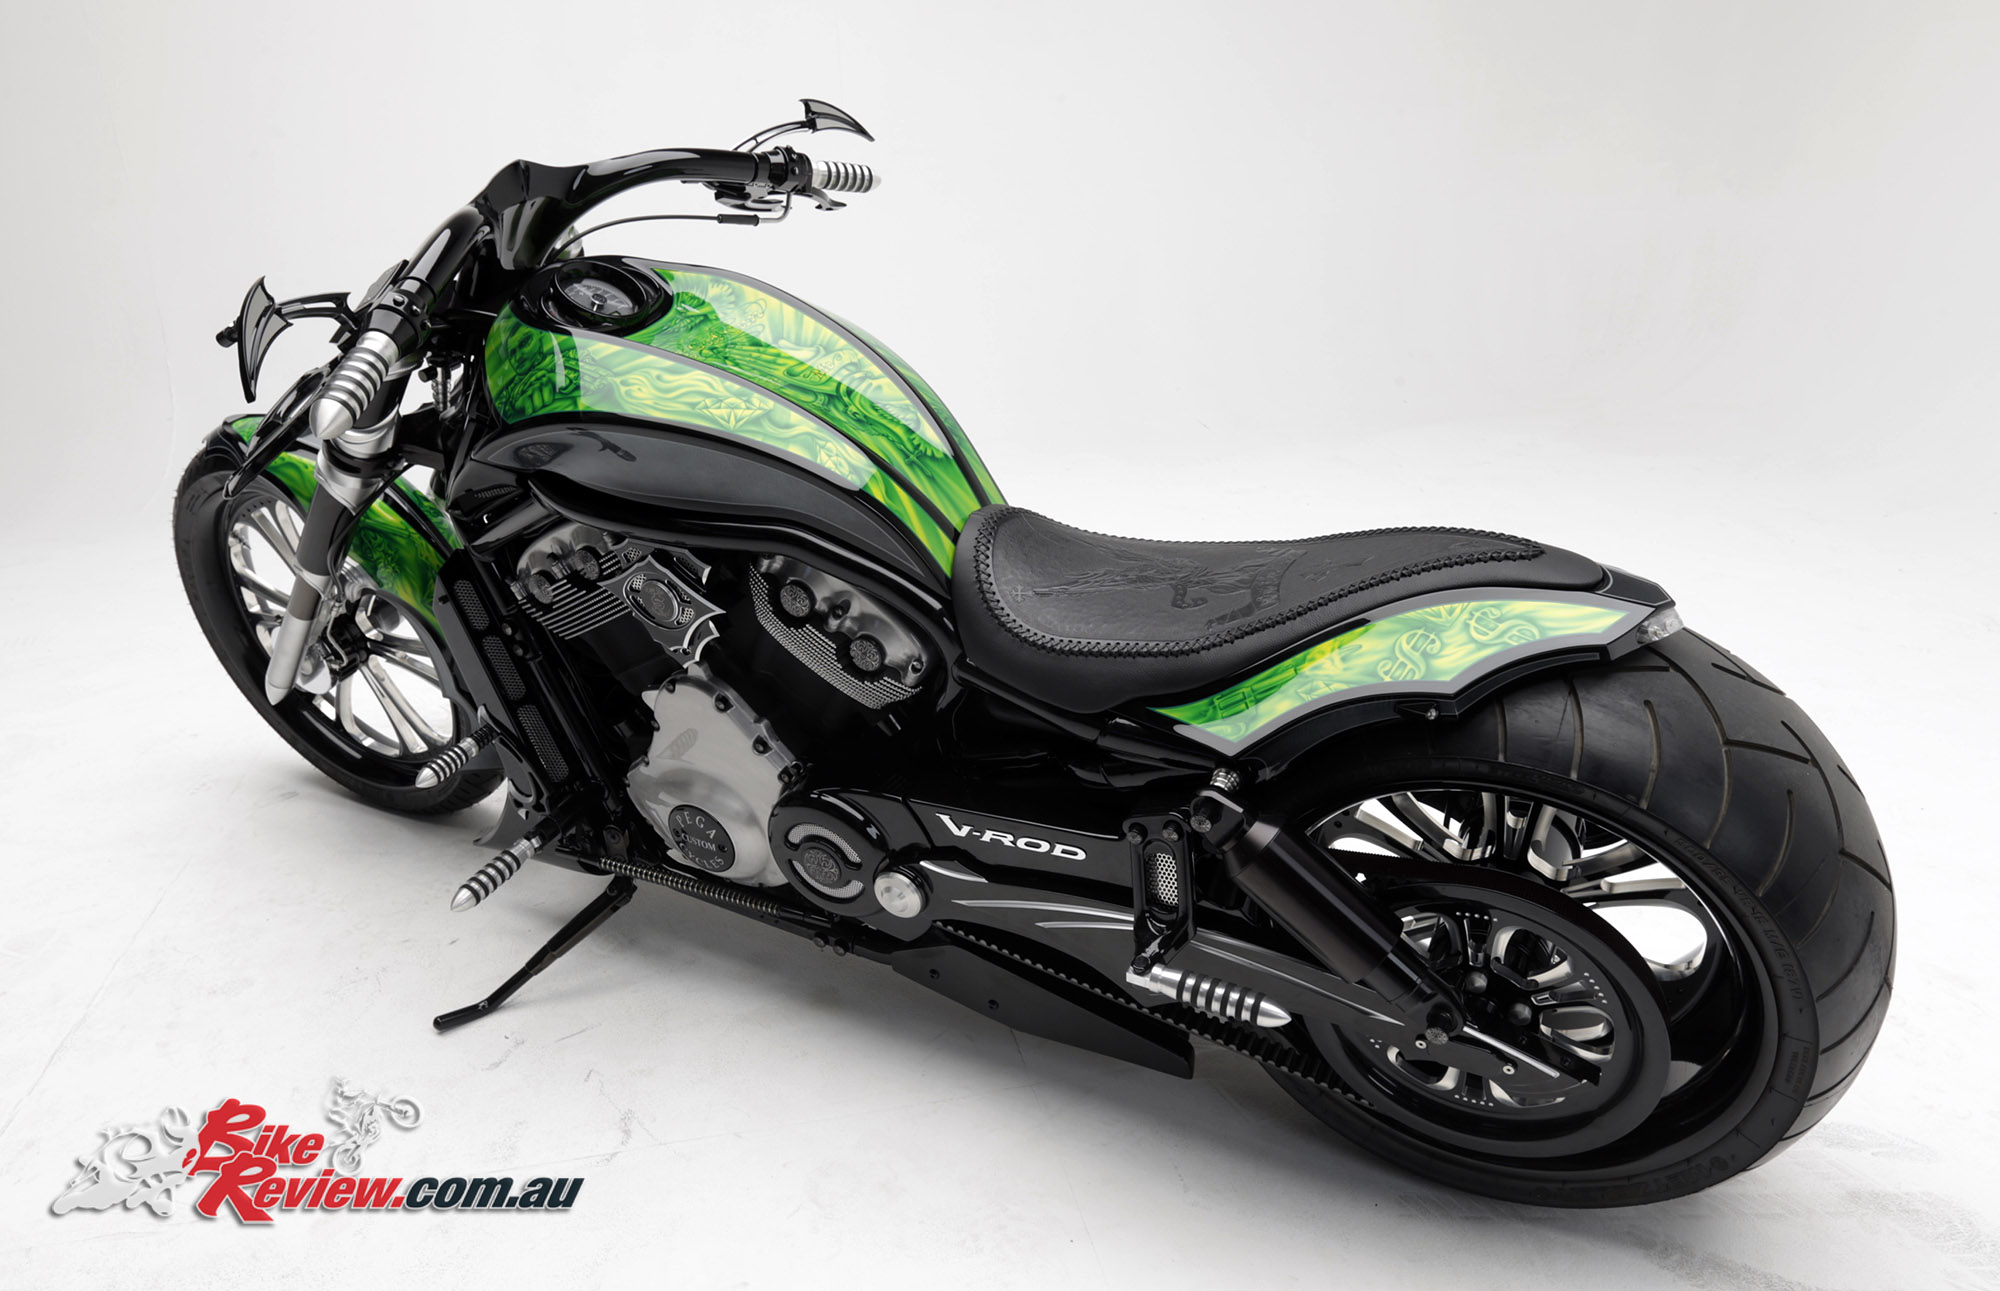 Aftermarket Harley Parts